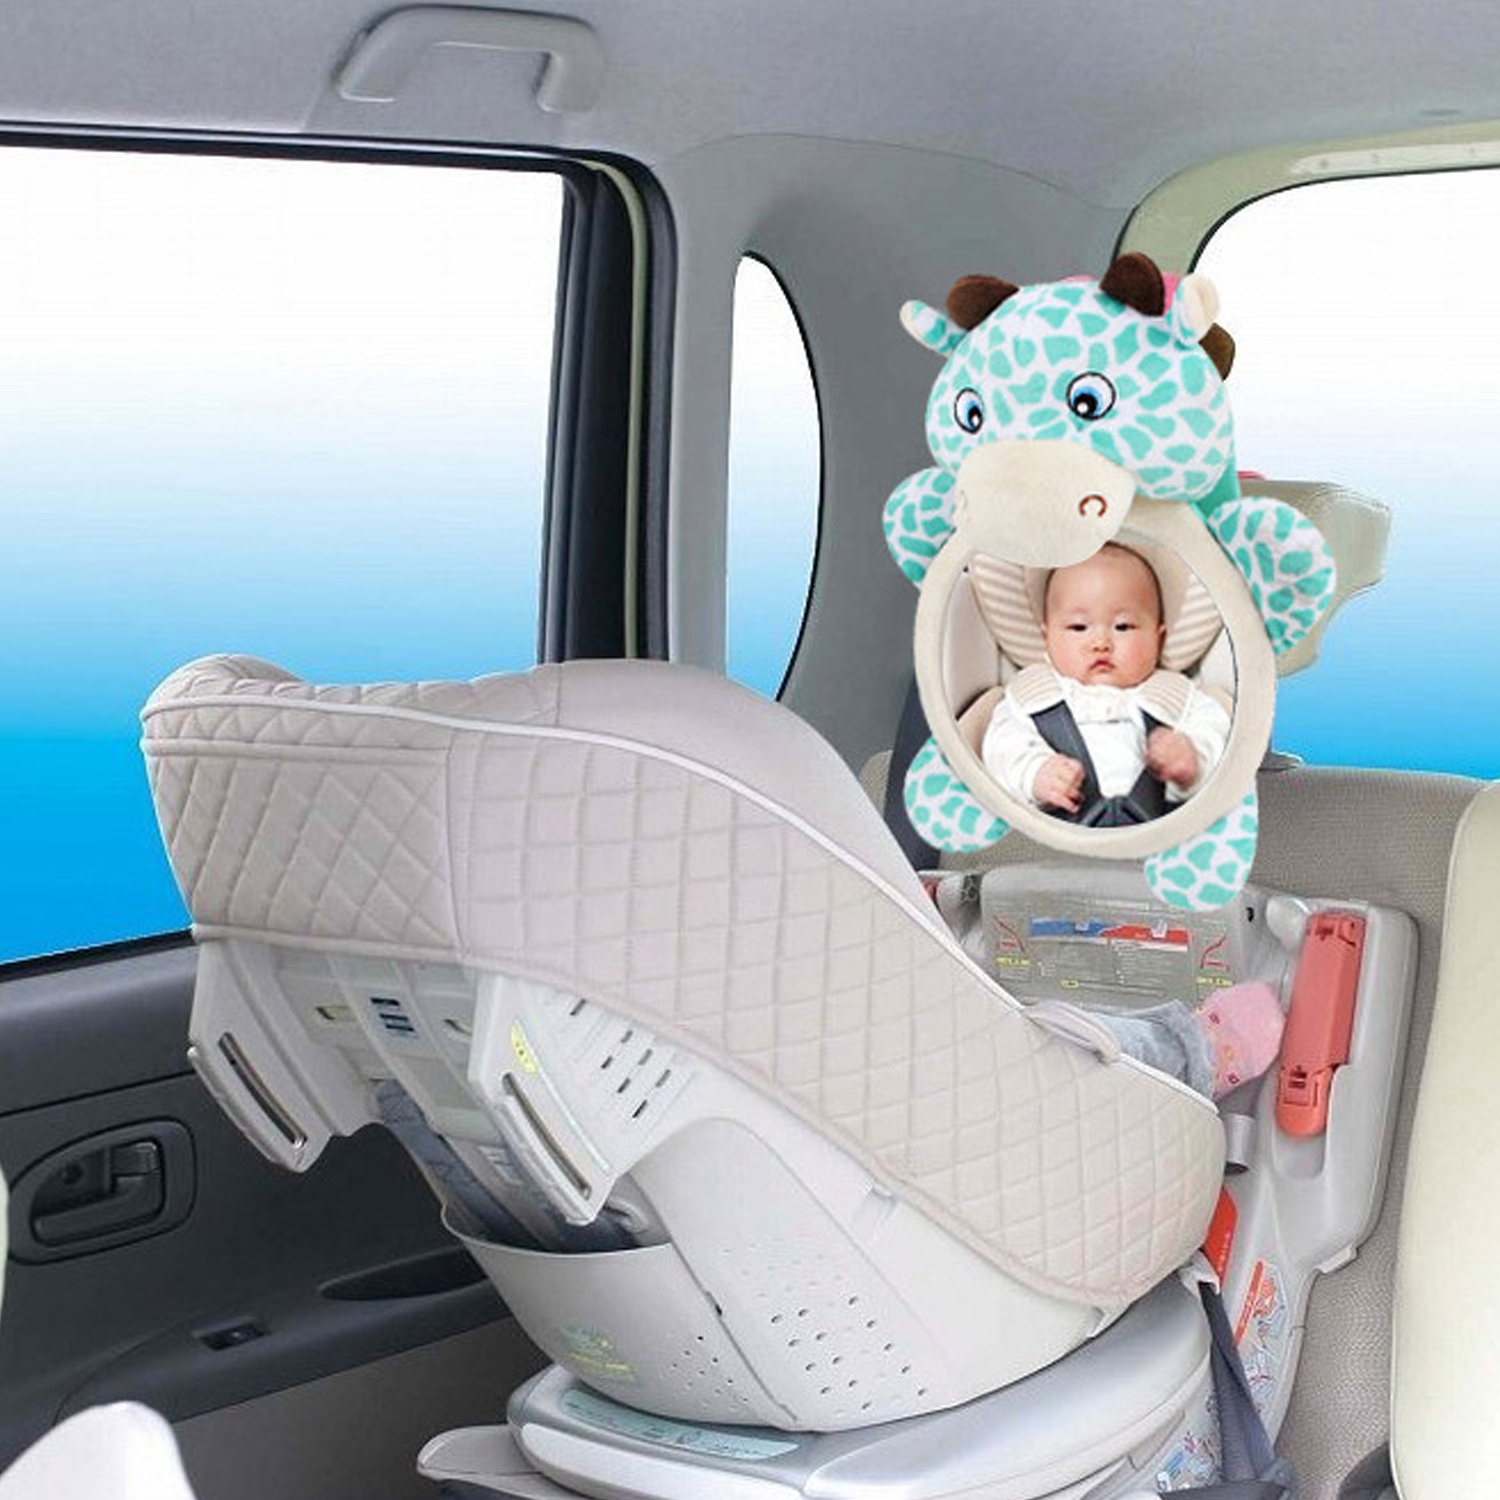 Cute Cartoon Plush Doll 360 Degree Adjustable Universal Baby Car Safety Seat Rearview Mirror Rear Facing Mirrors Accessories